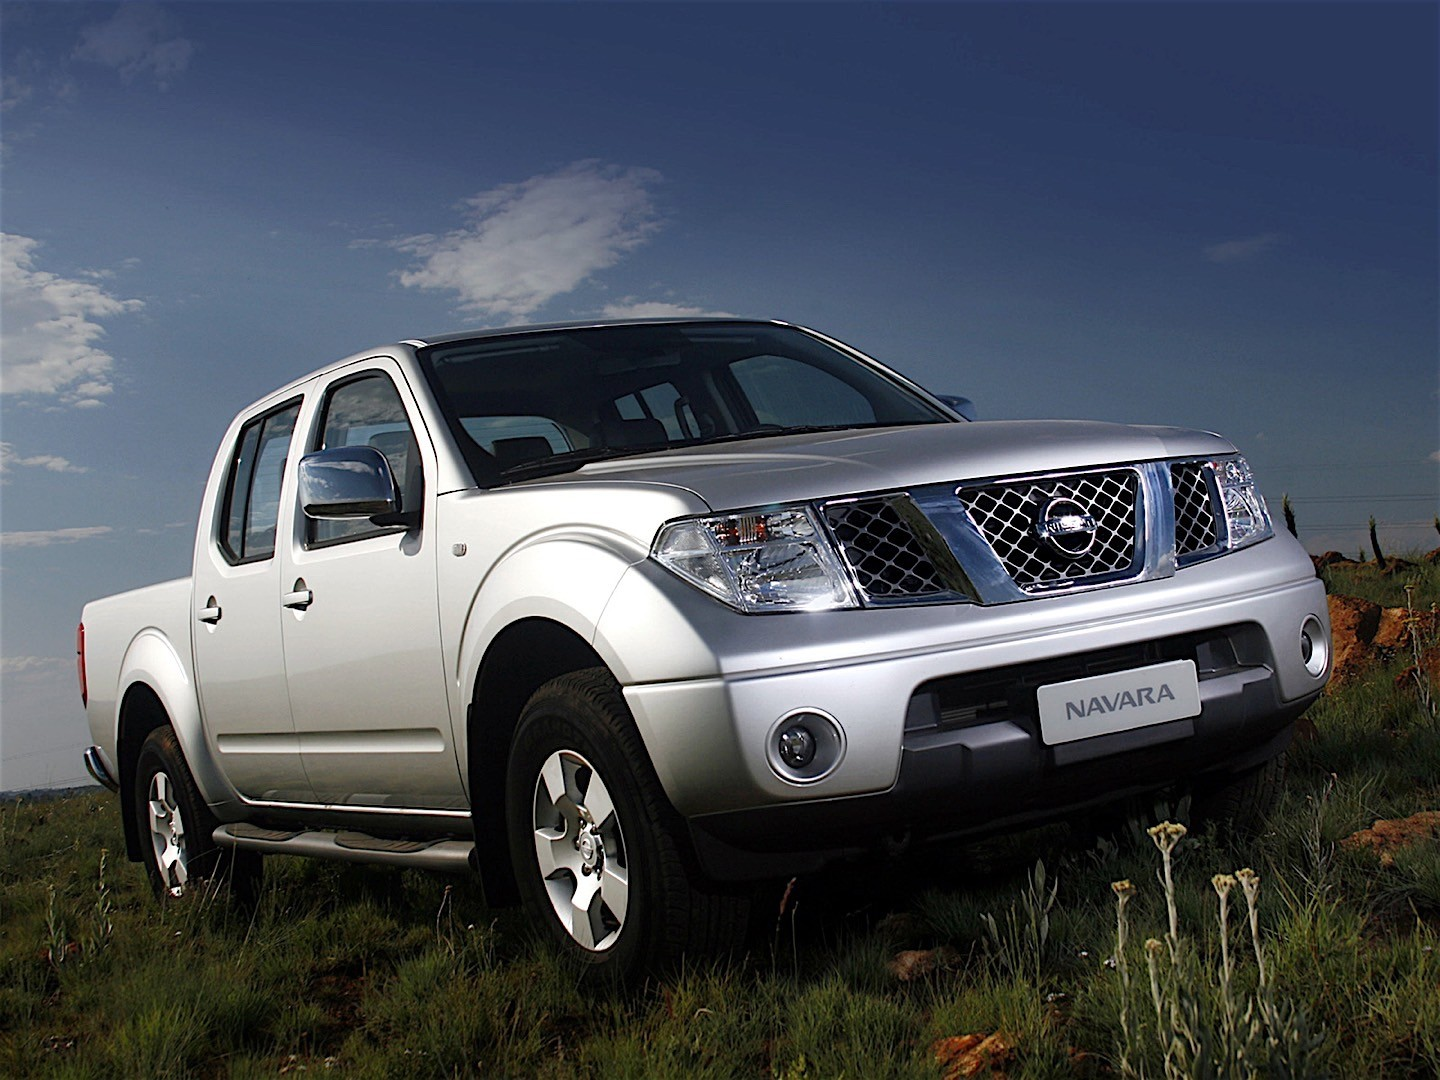 2005 Nissan Frontier Towing Capacity >> NISSAN Navara / Frontier Double Cab - 2005, 2006, 2007, 2008, 2009, 2010, 2011, 2012, 2013, 2014 ...